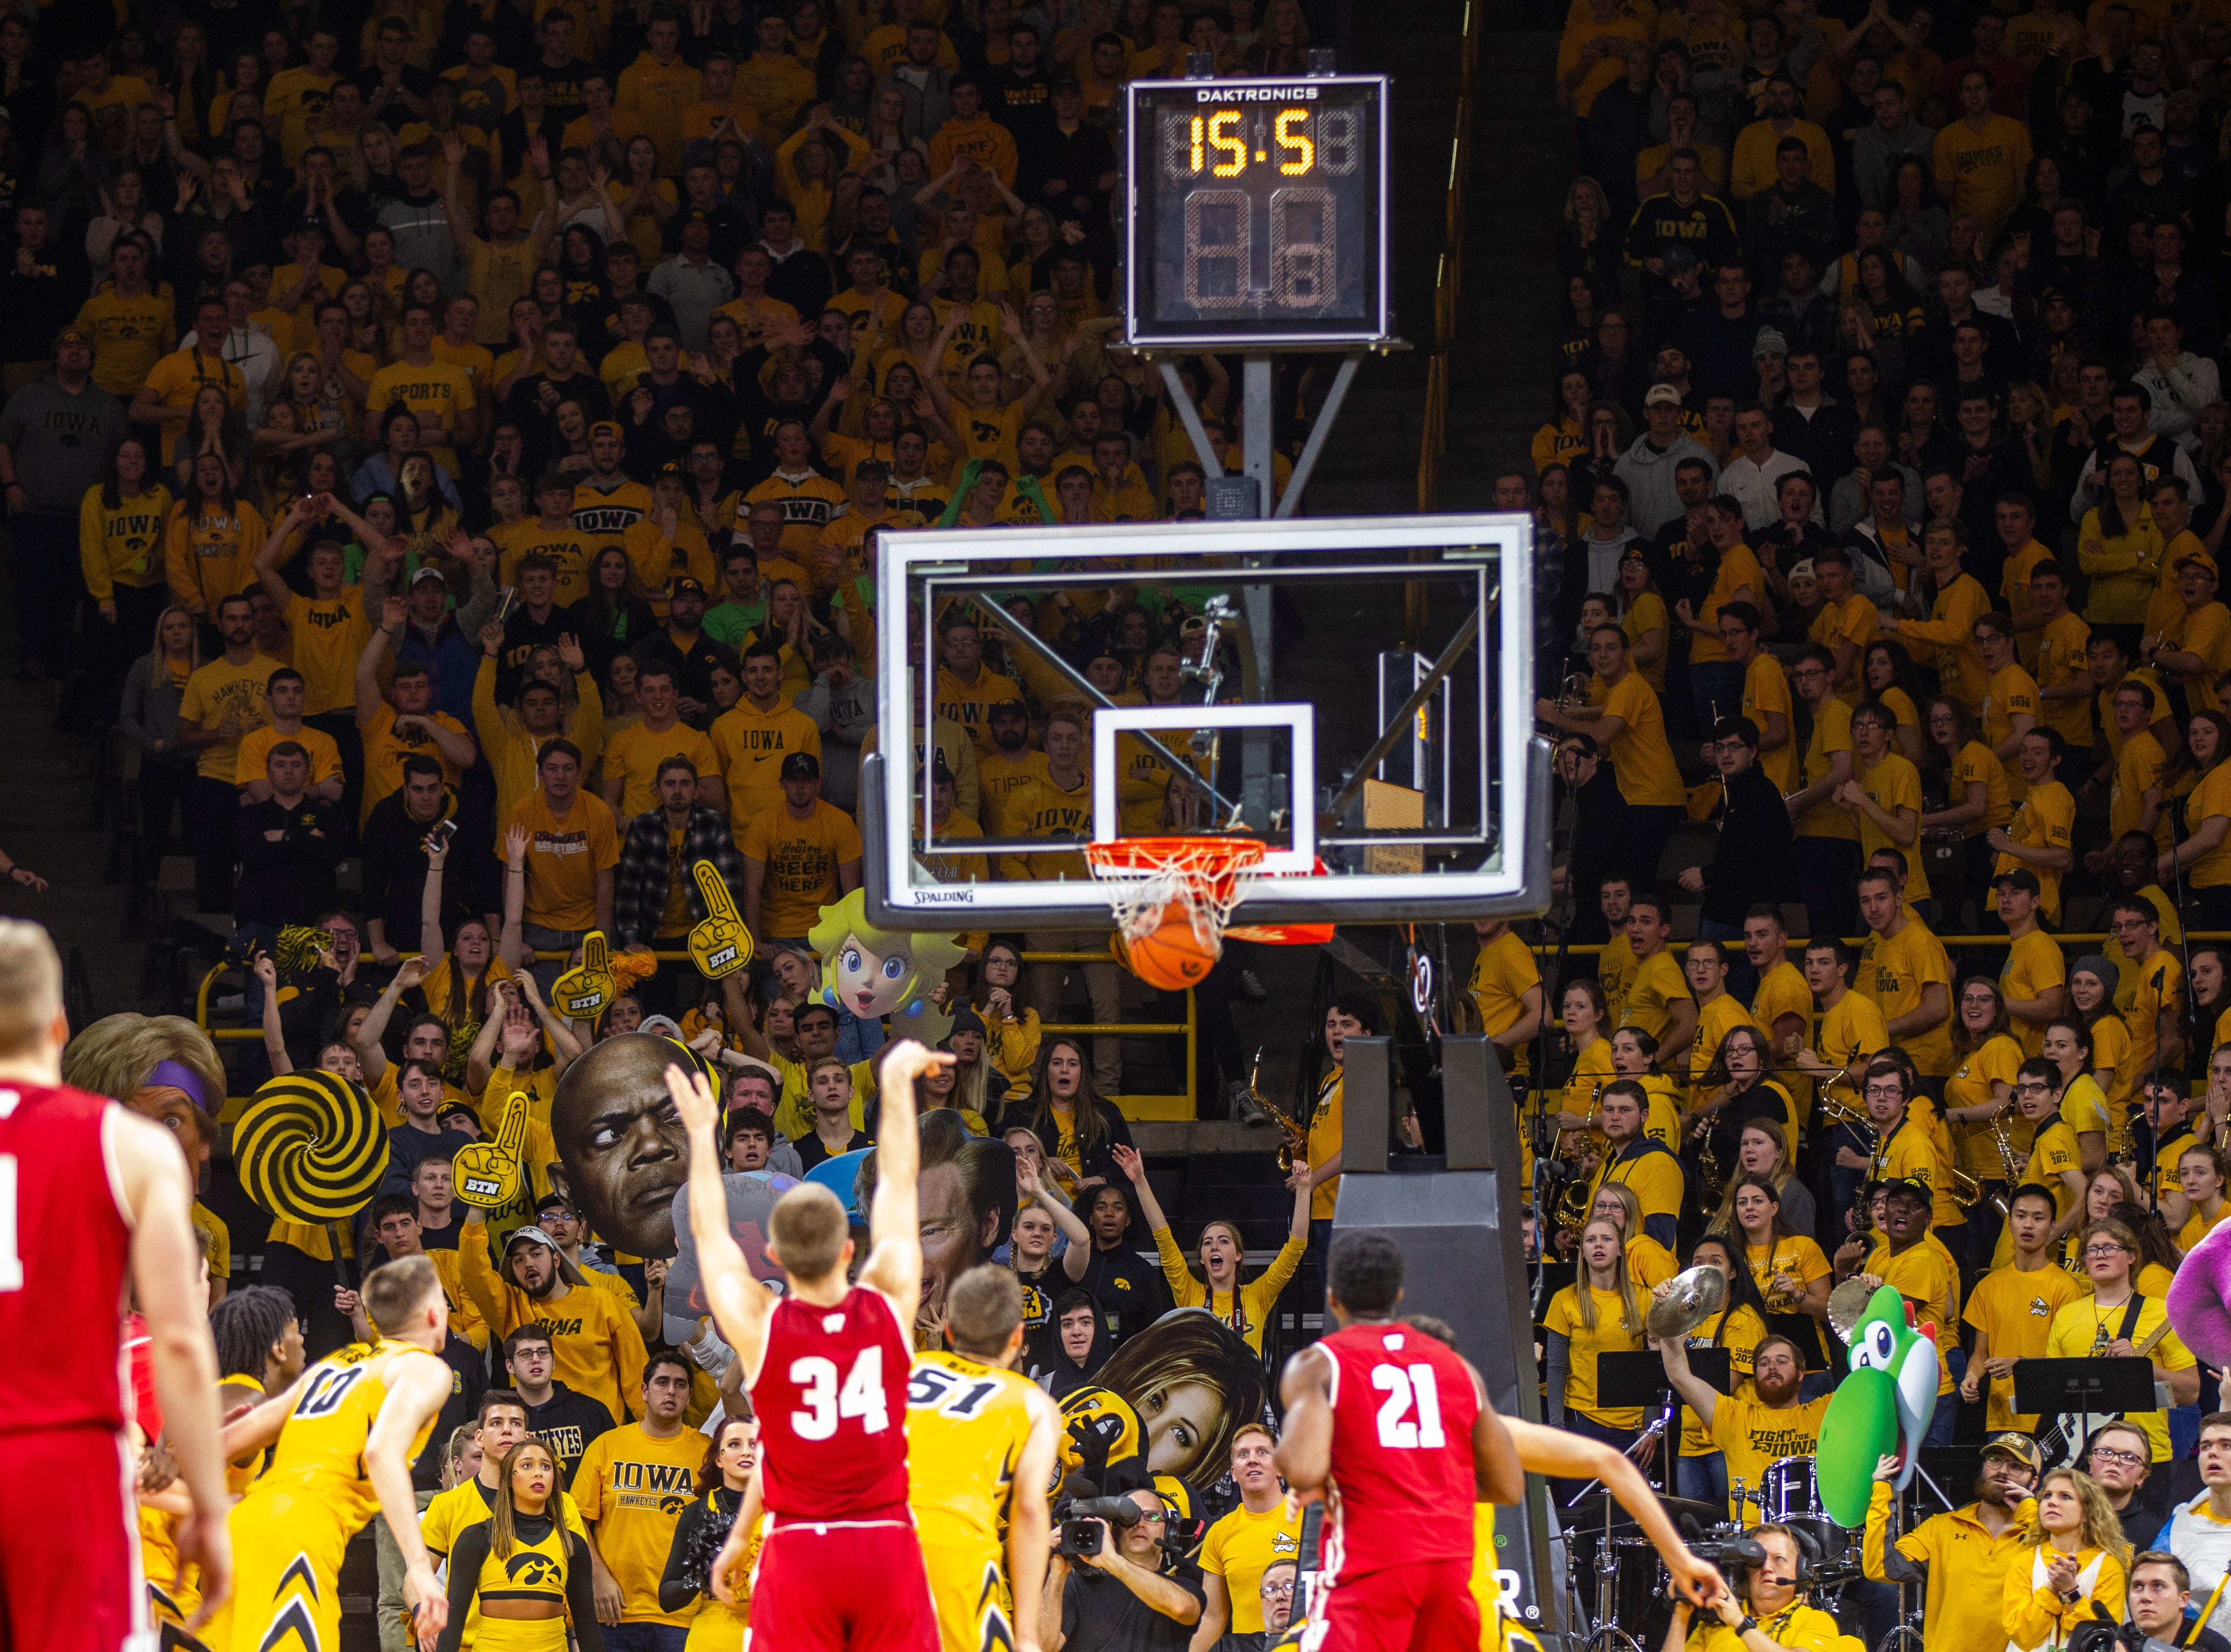 Wisconsin's Brad Davidson (34) makes a free throw while Iowa students attempt to distract him during a NCAA Big Ten Conference men's basketball game on Friday, Nov. 30, 2018, at Carver-Hawkeye Arena in Iowa City.